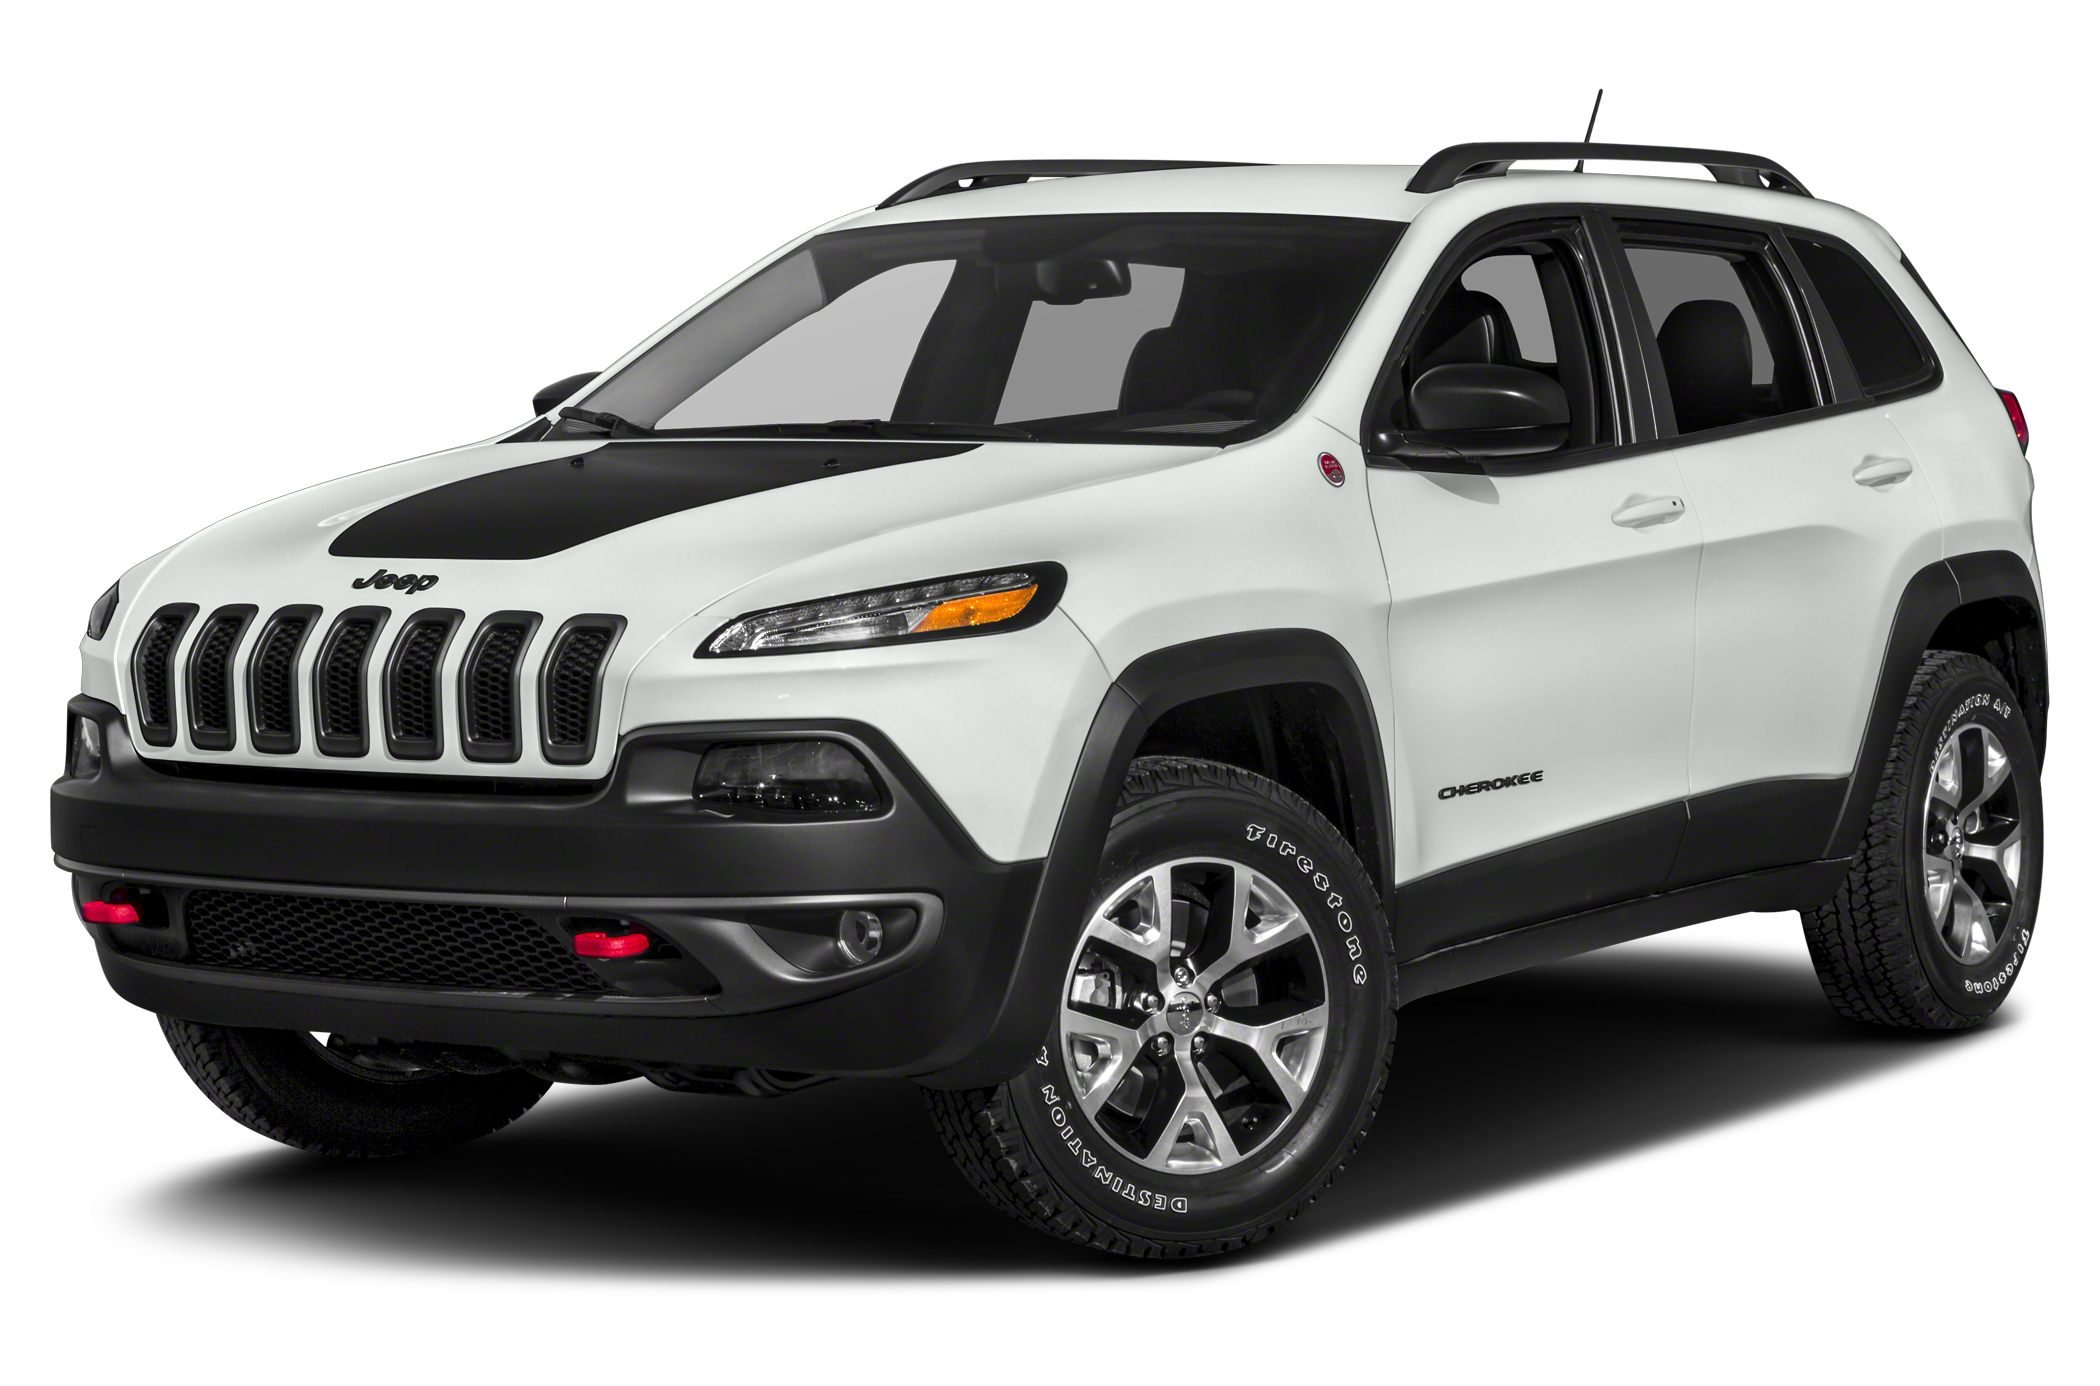 2014 Jeep Cherokee Trailhawk SUV for sale in Platte City for $31,988 with 16,724 miles.